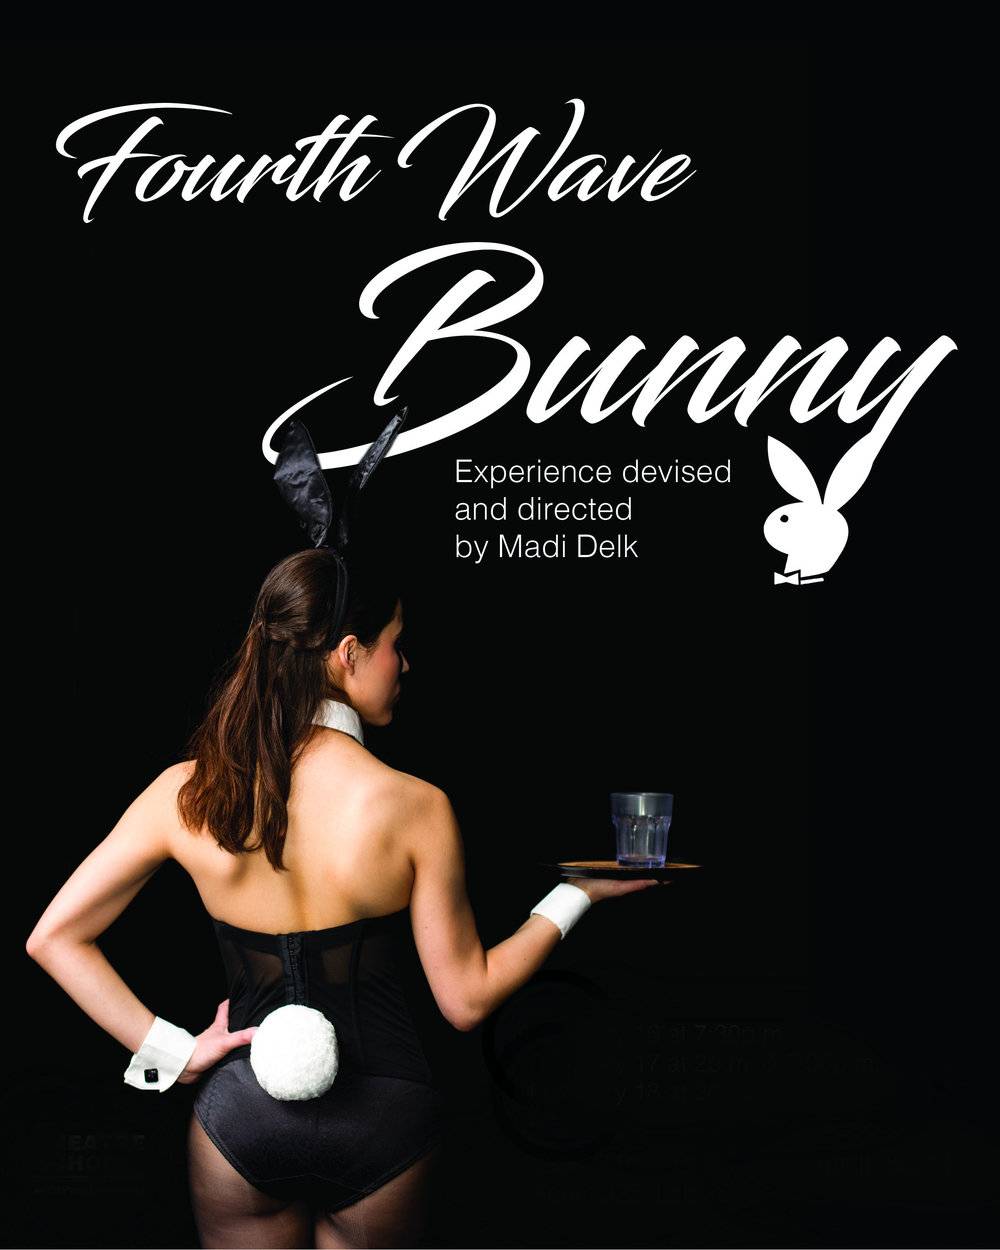 Fourth Wave Bunny - The Theatre School at DePaul University: February 2018